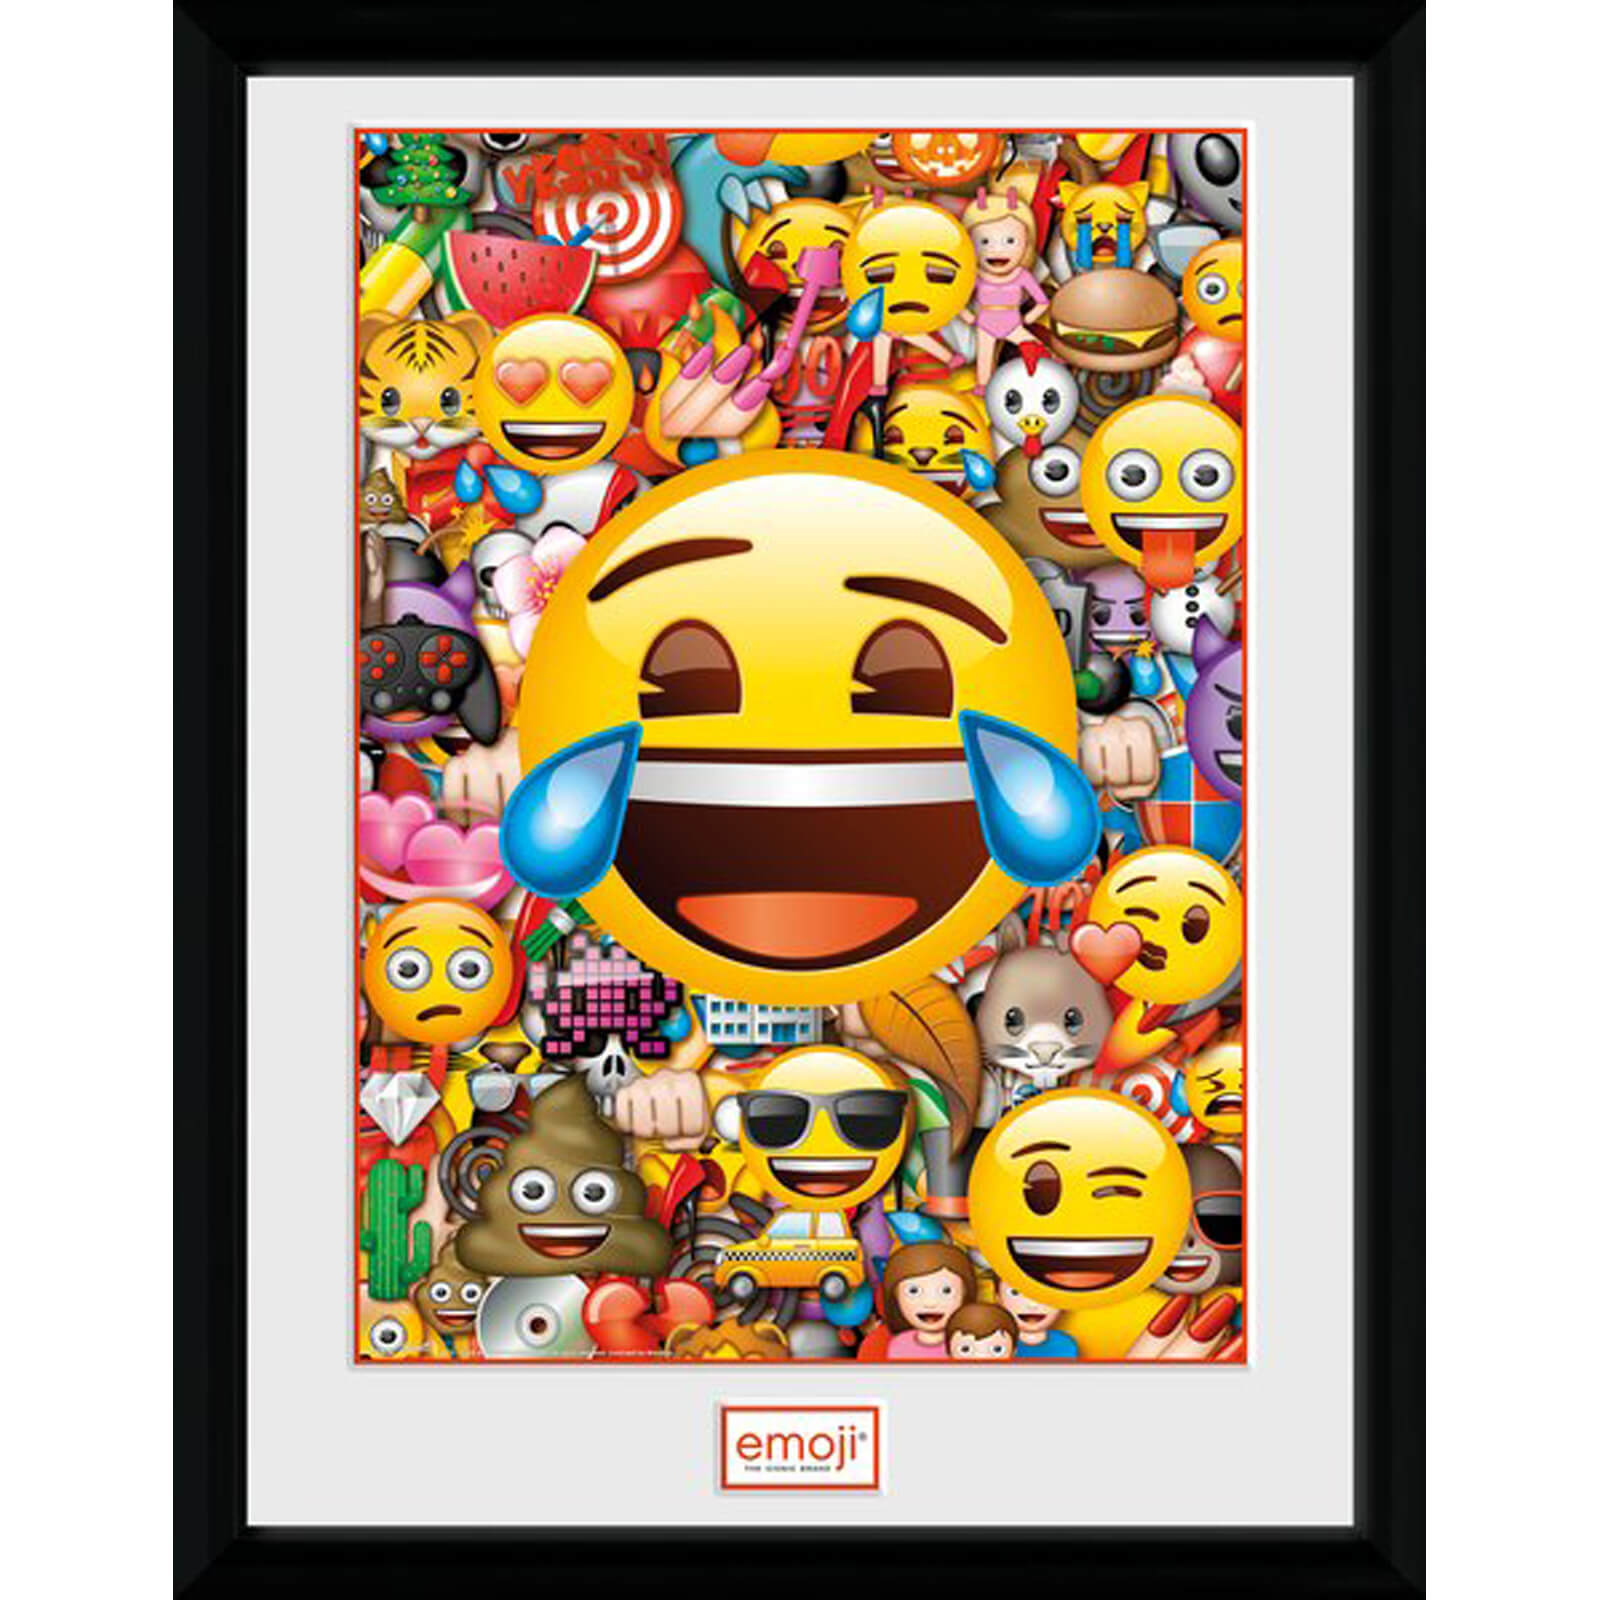 Emoji Collage 12 x 16 Inches Framed Photograph